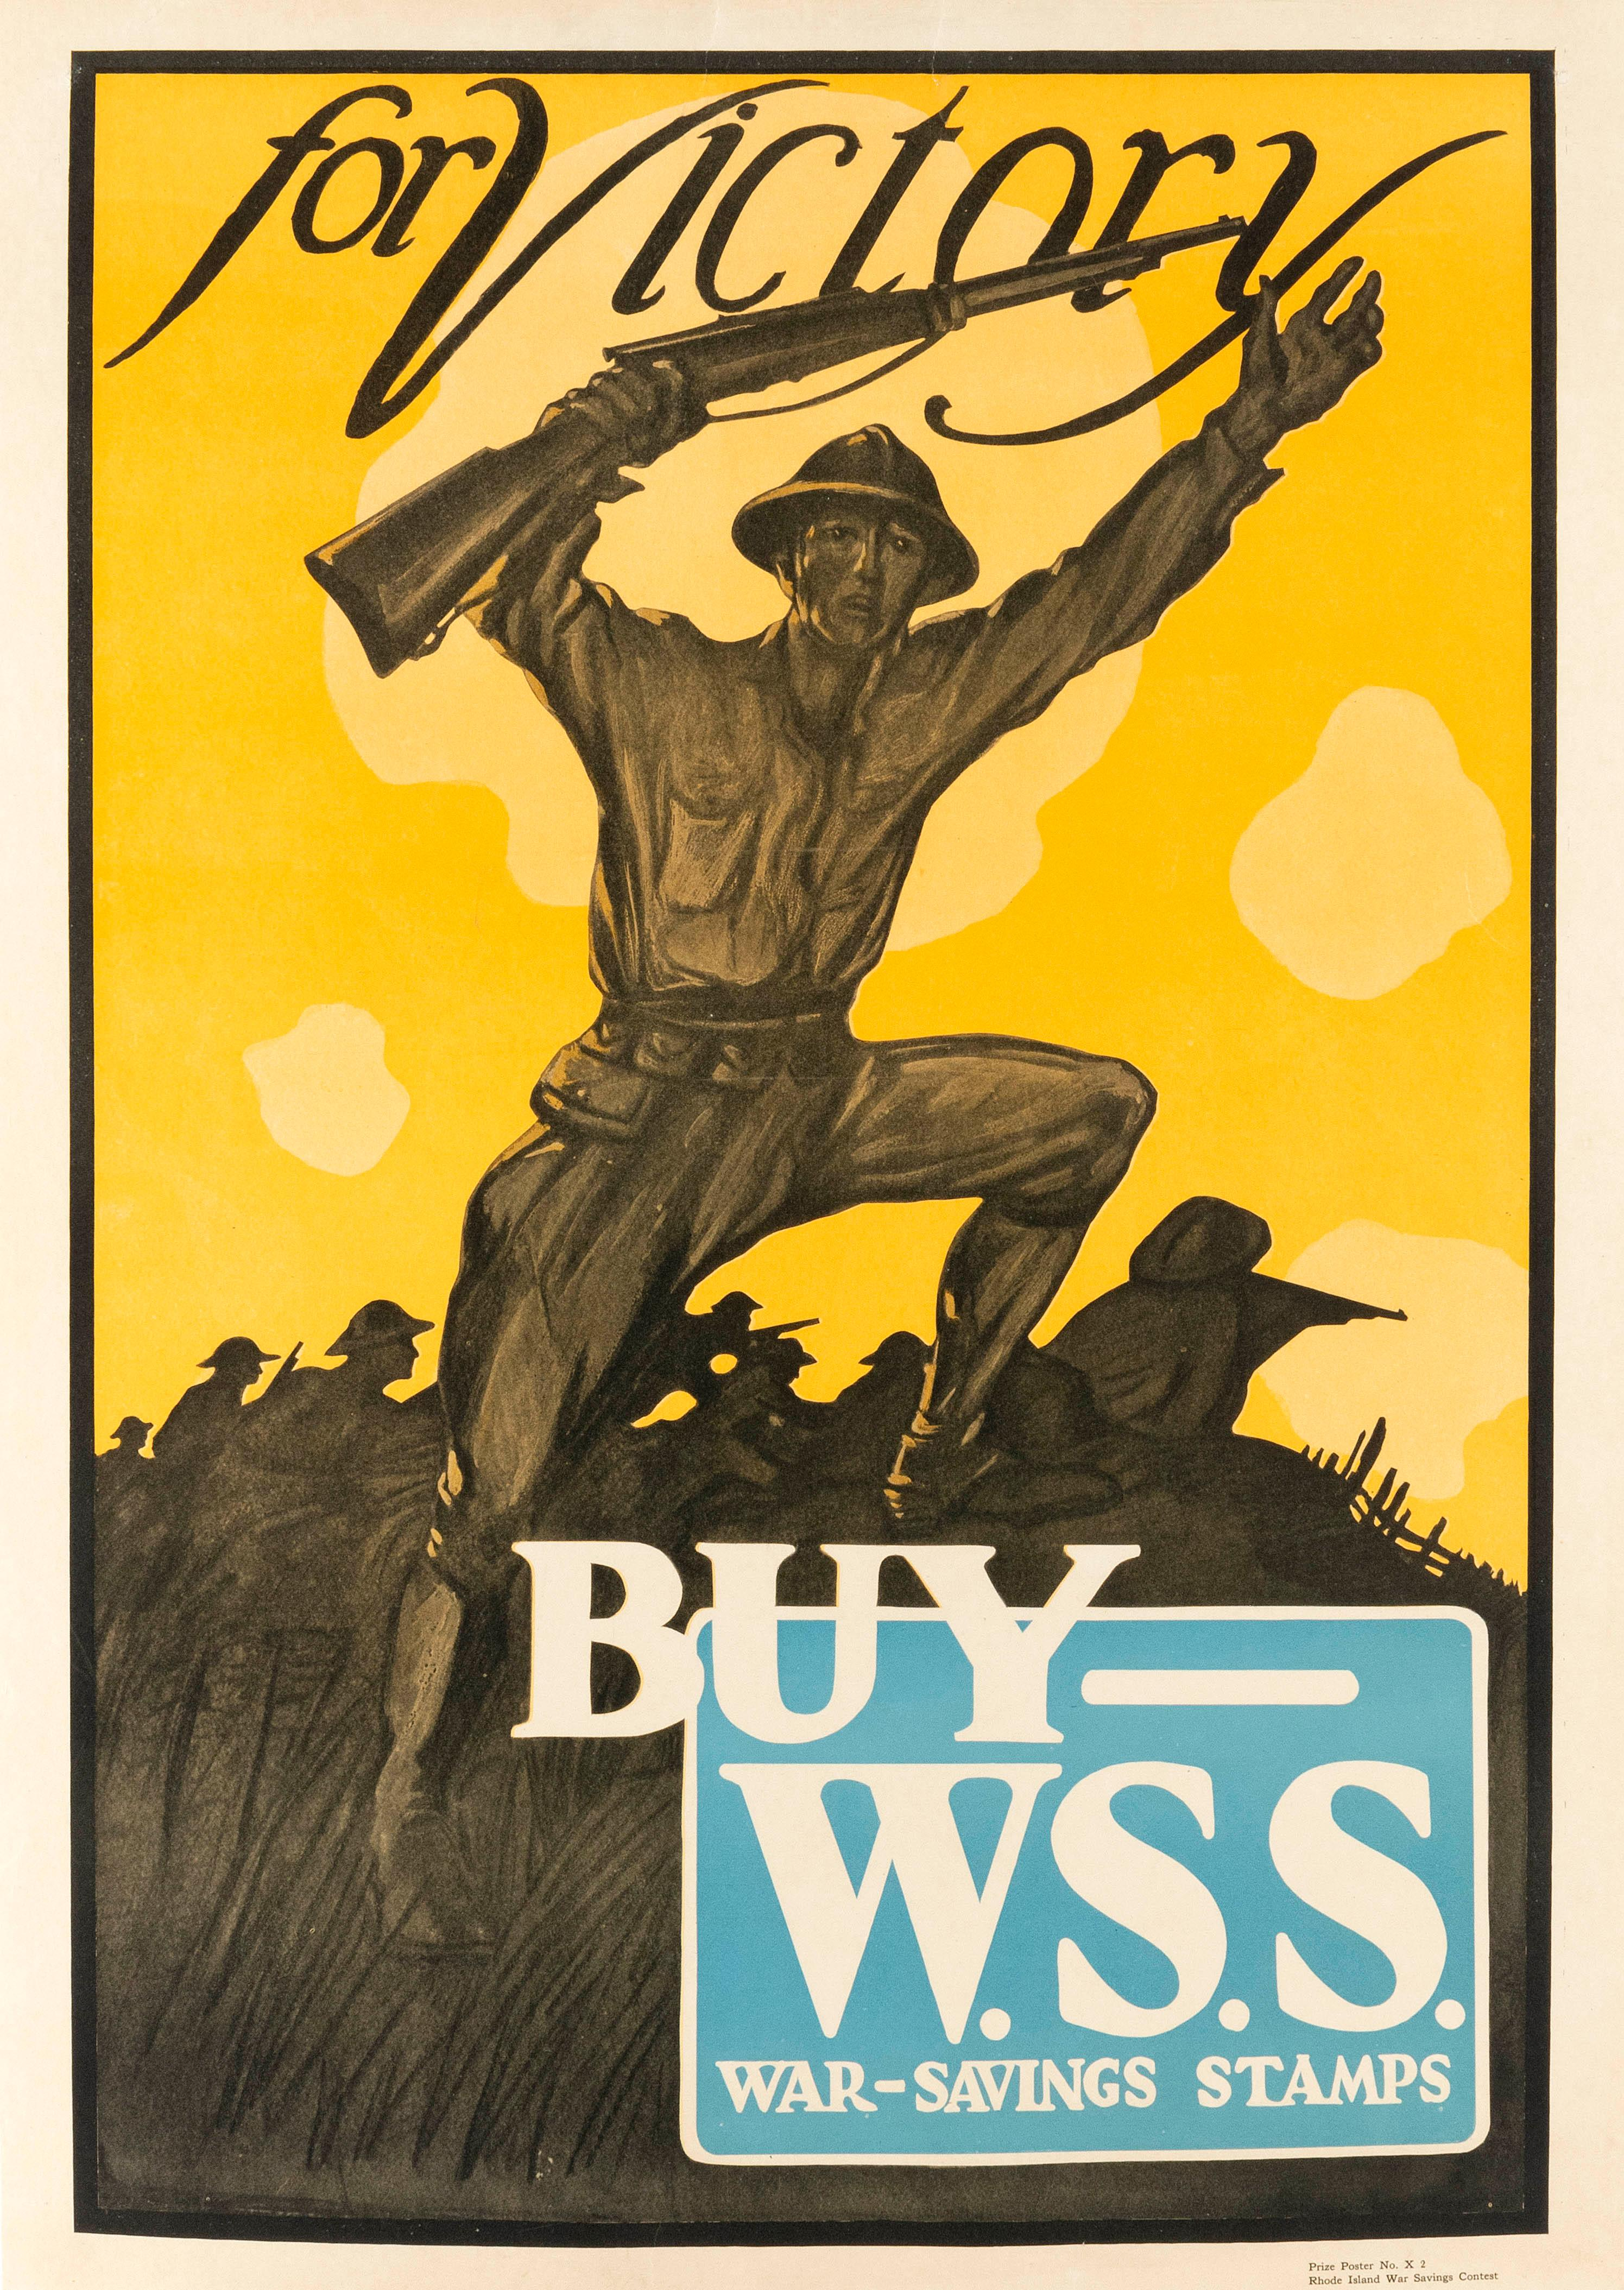 """FOR VICTORY BUY - W.S.S. WAR-SAVINGS STAMPS"" Rhode Island War Savings Contest poster. Depicts a soldier signaling with his rifle an..."